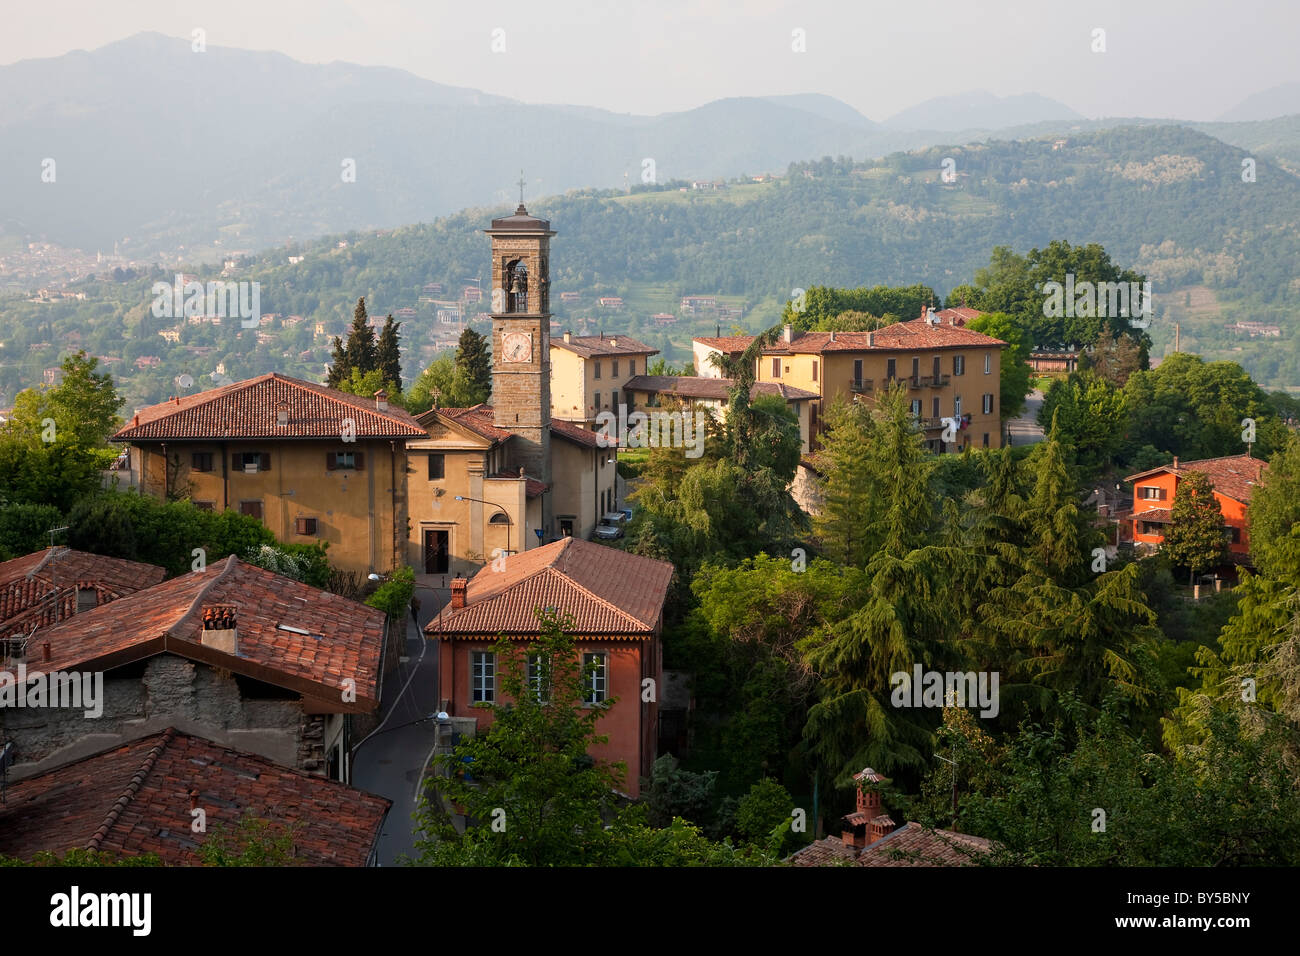 View over Bergamo, Lombardy, Italy Stock Photo